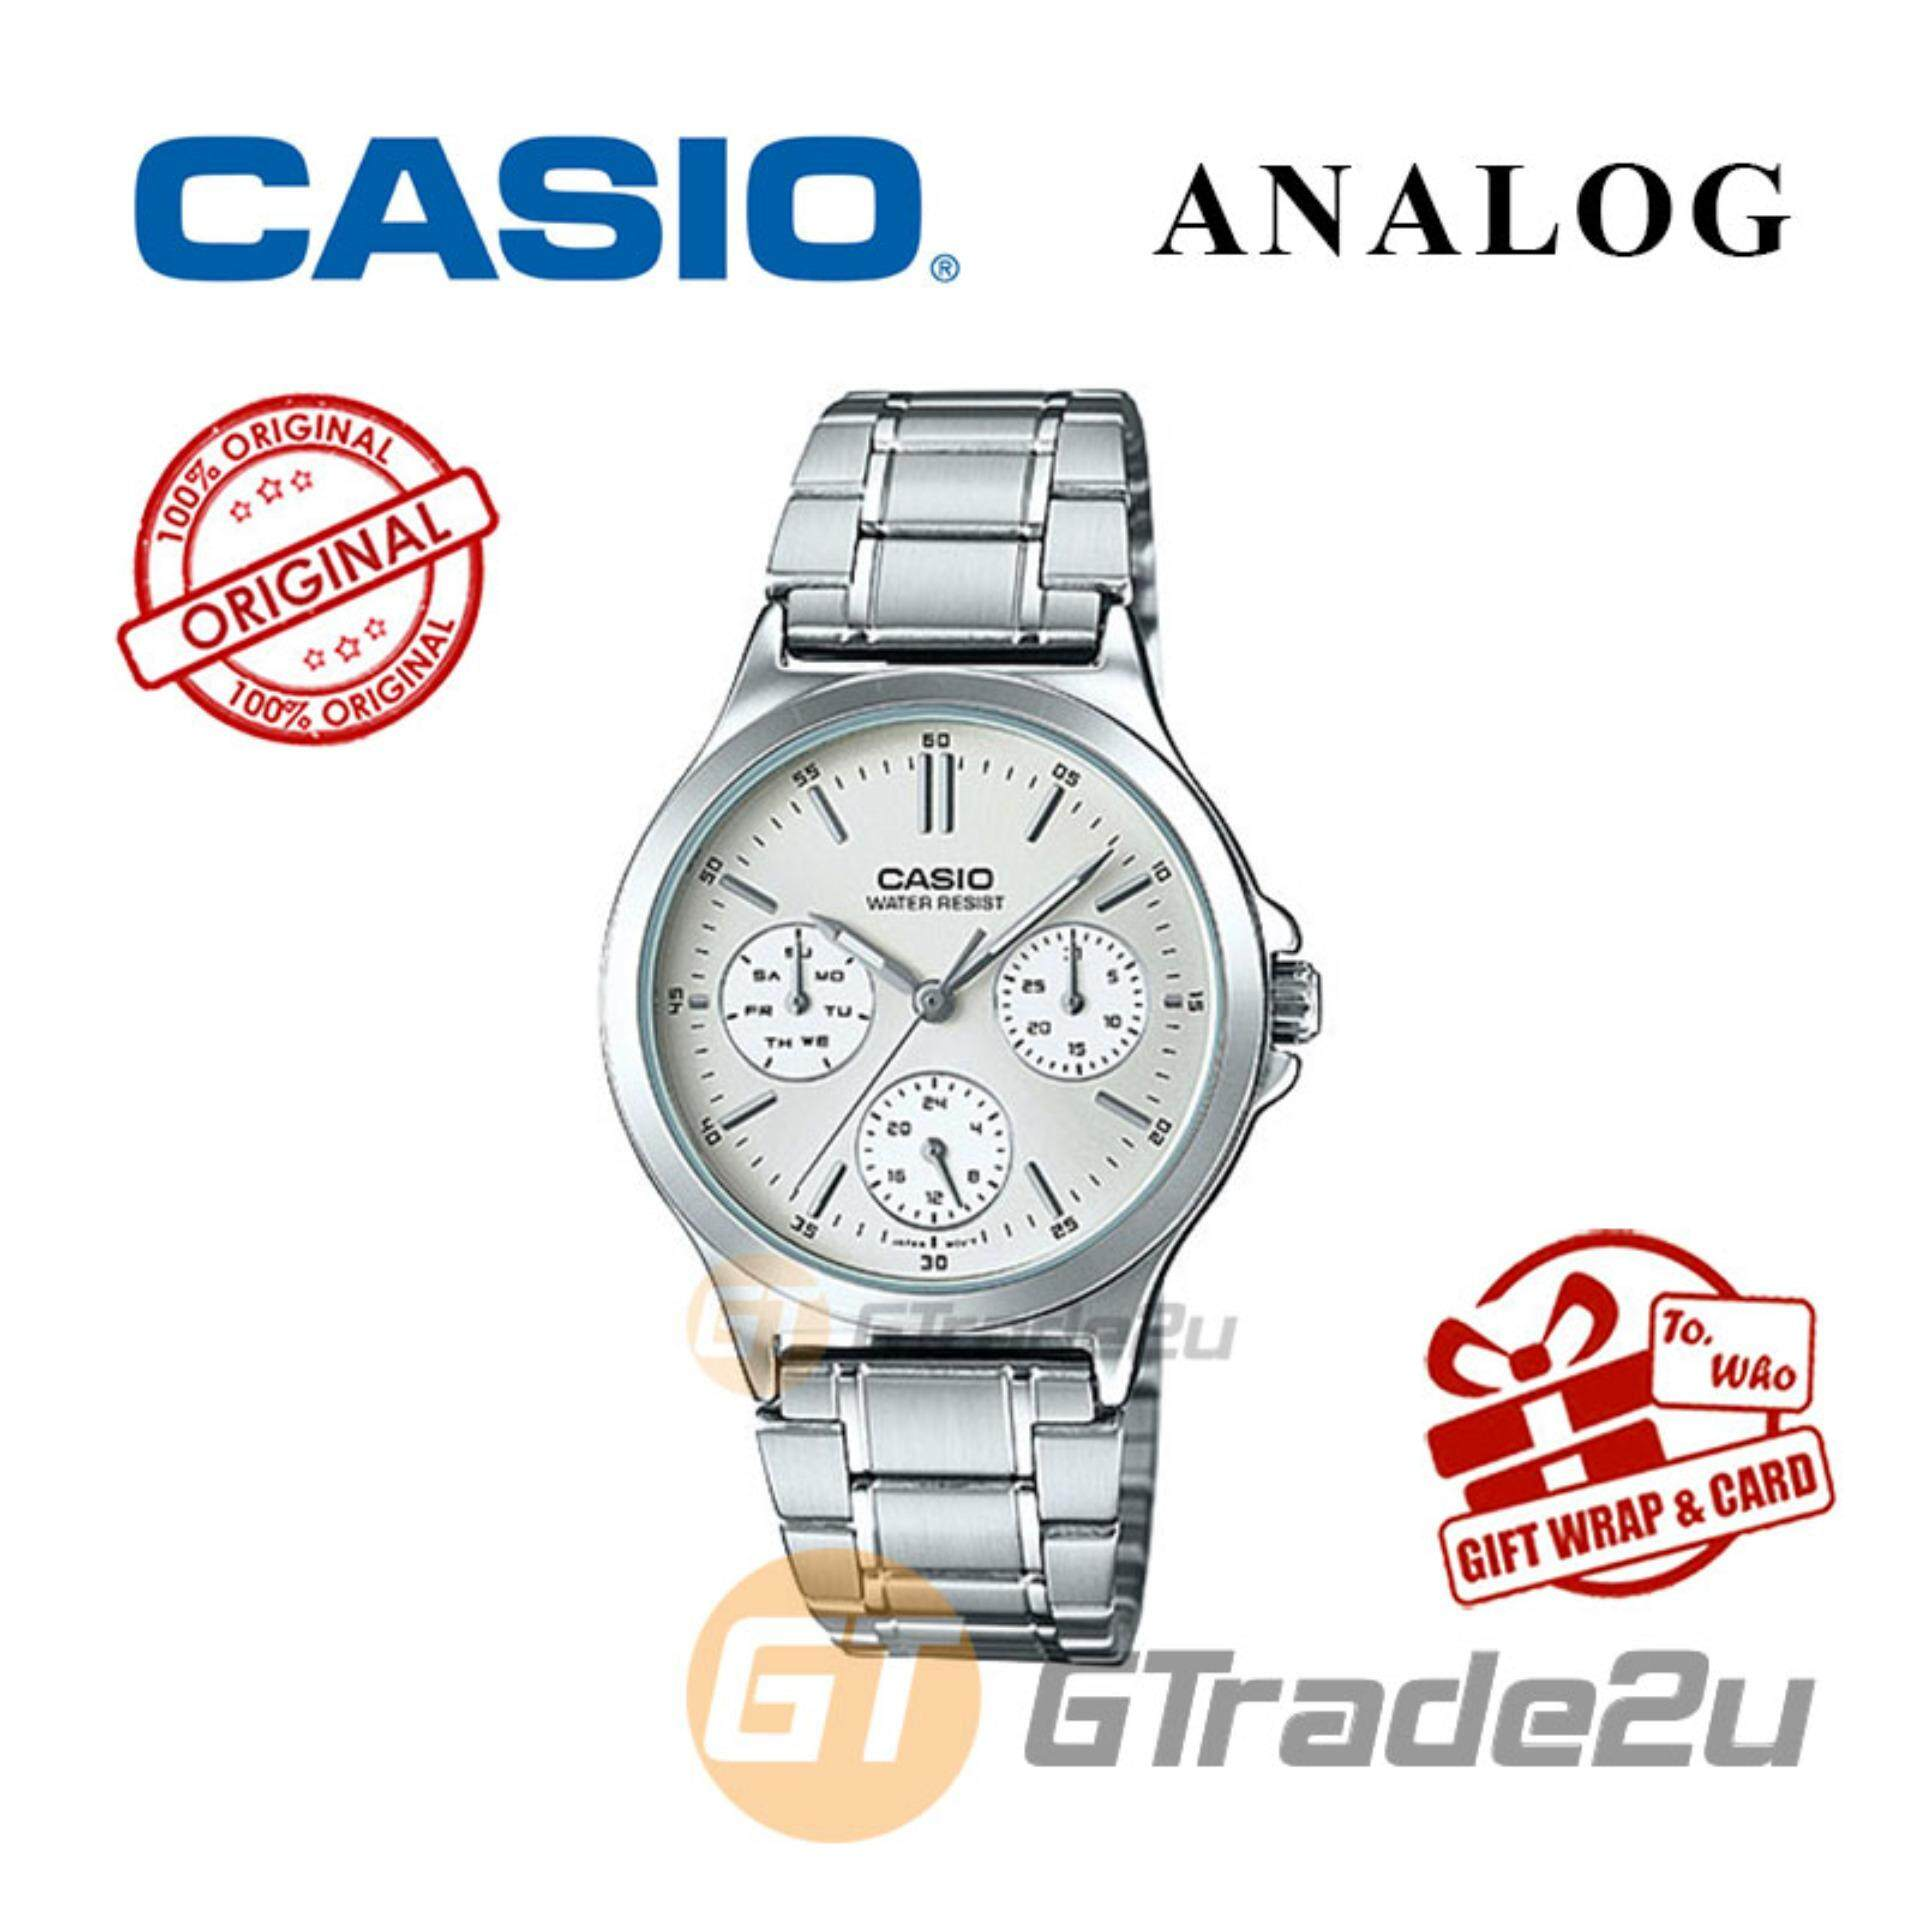 Casio Watches With Best Price At Lazada Malaysia Databank Ca 506 1df Jam Tangan Pria Silver Strap Stainless Steel Ladies Ltp V300d 7av Analog Watch Multi Hand Water Resistant